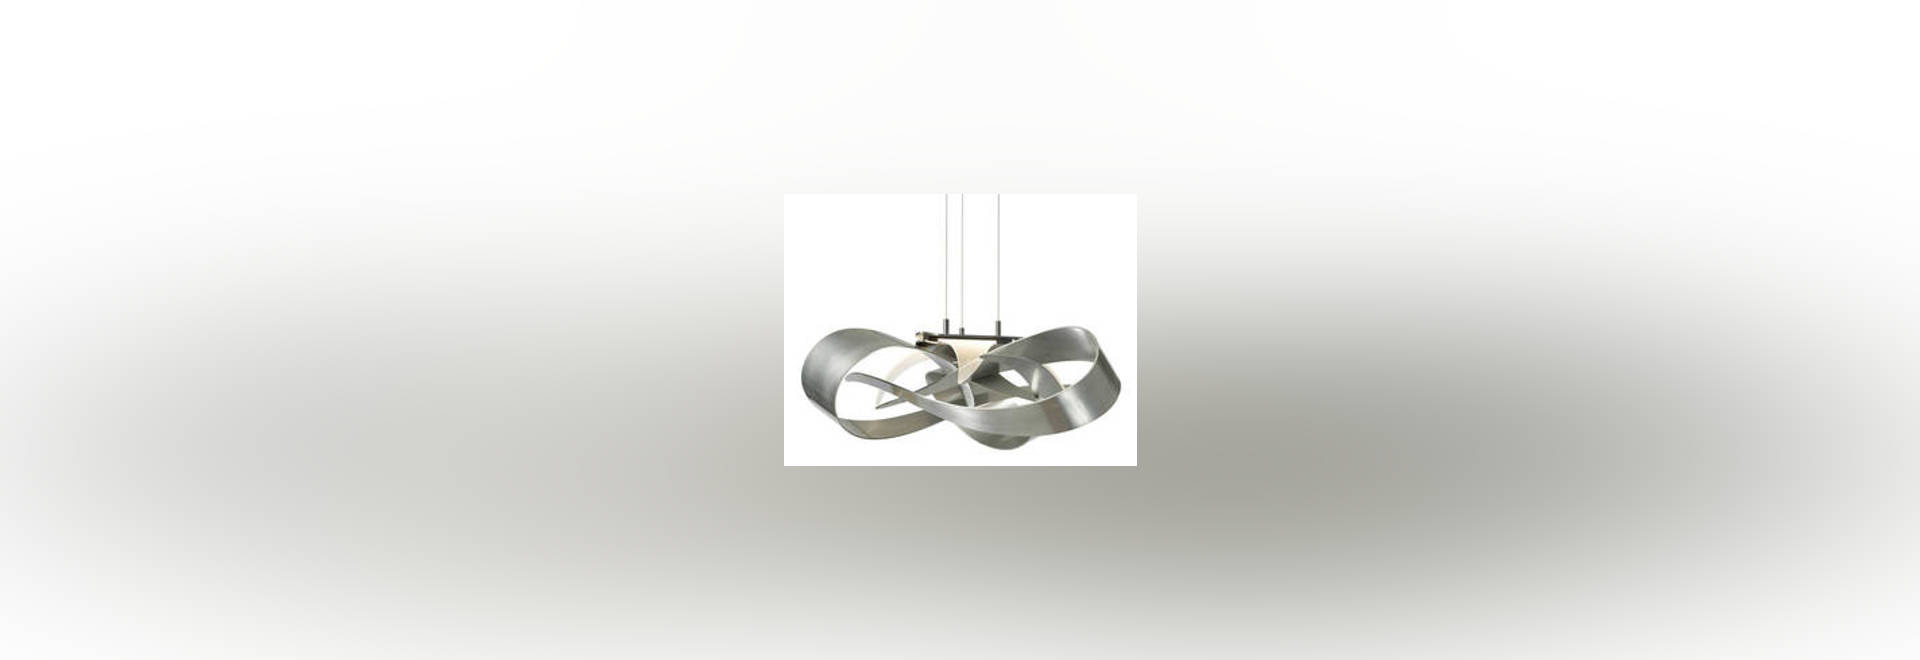 Powered Suspension System eliminates lighting fixture power cords ...